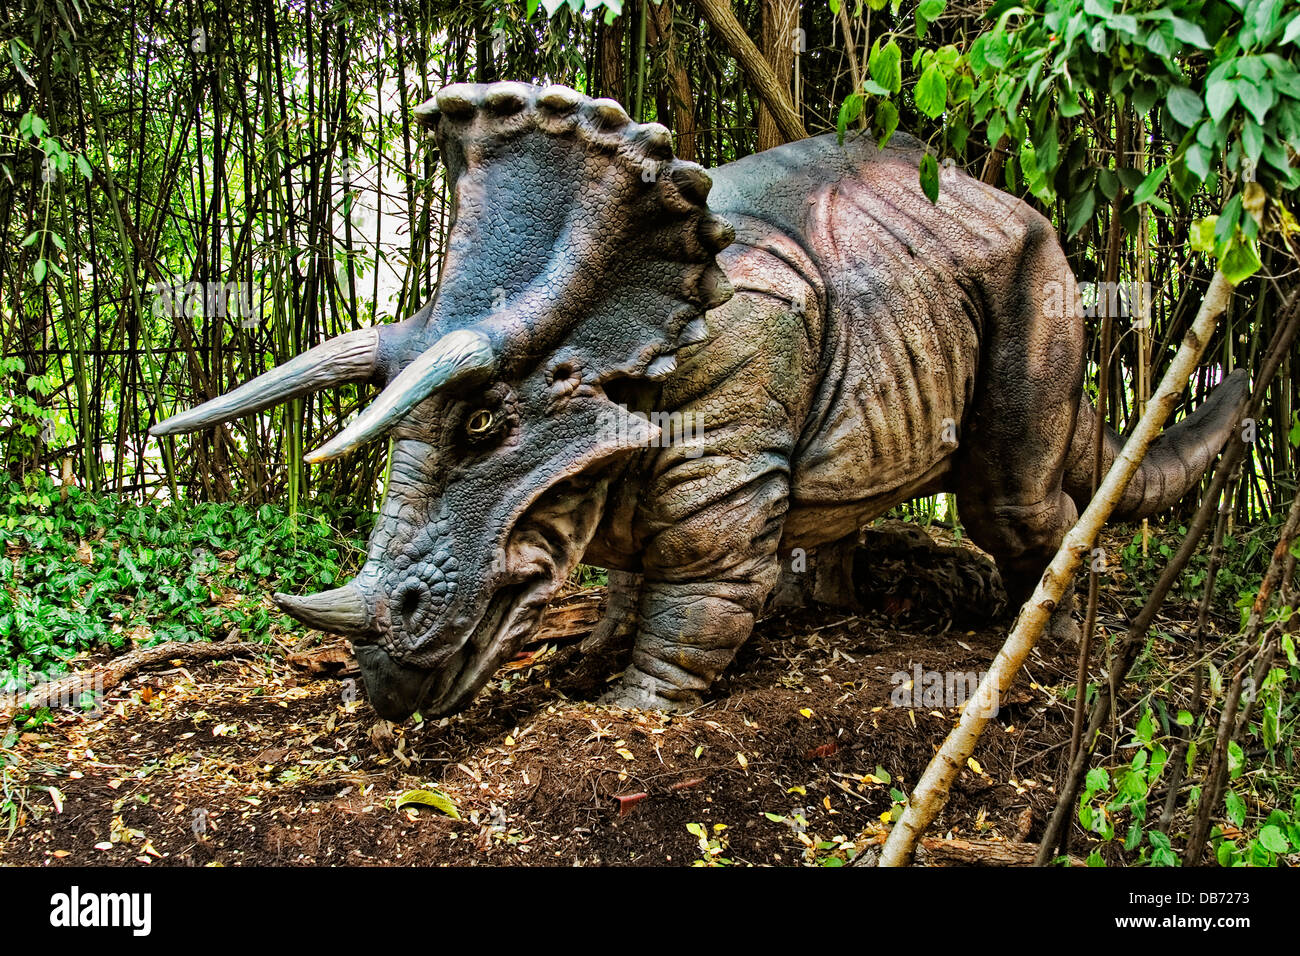 Triceratops (which means 'three horned face') dinosaur from the late Cretaceous period. - Stock Image